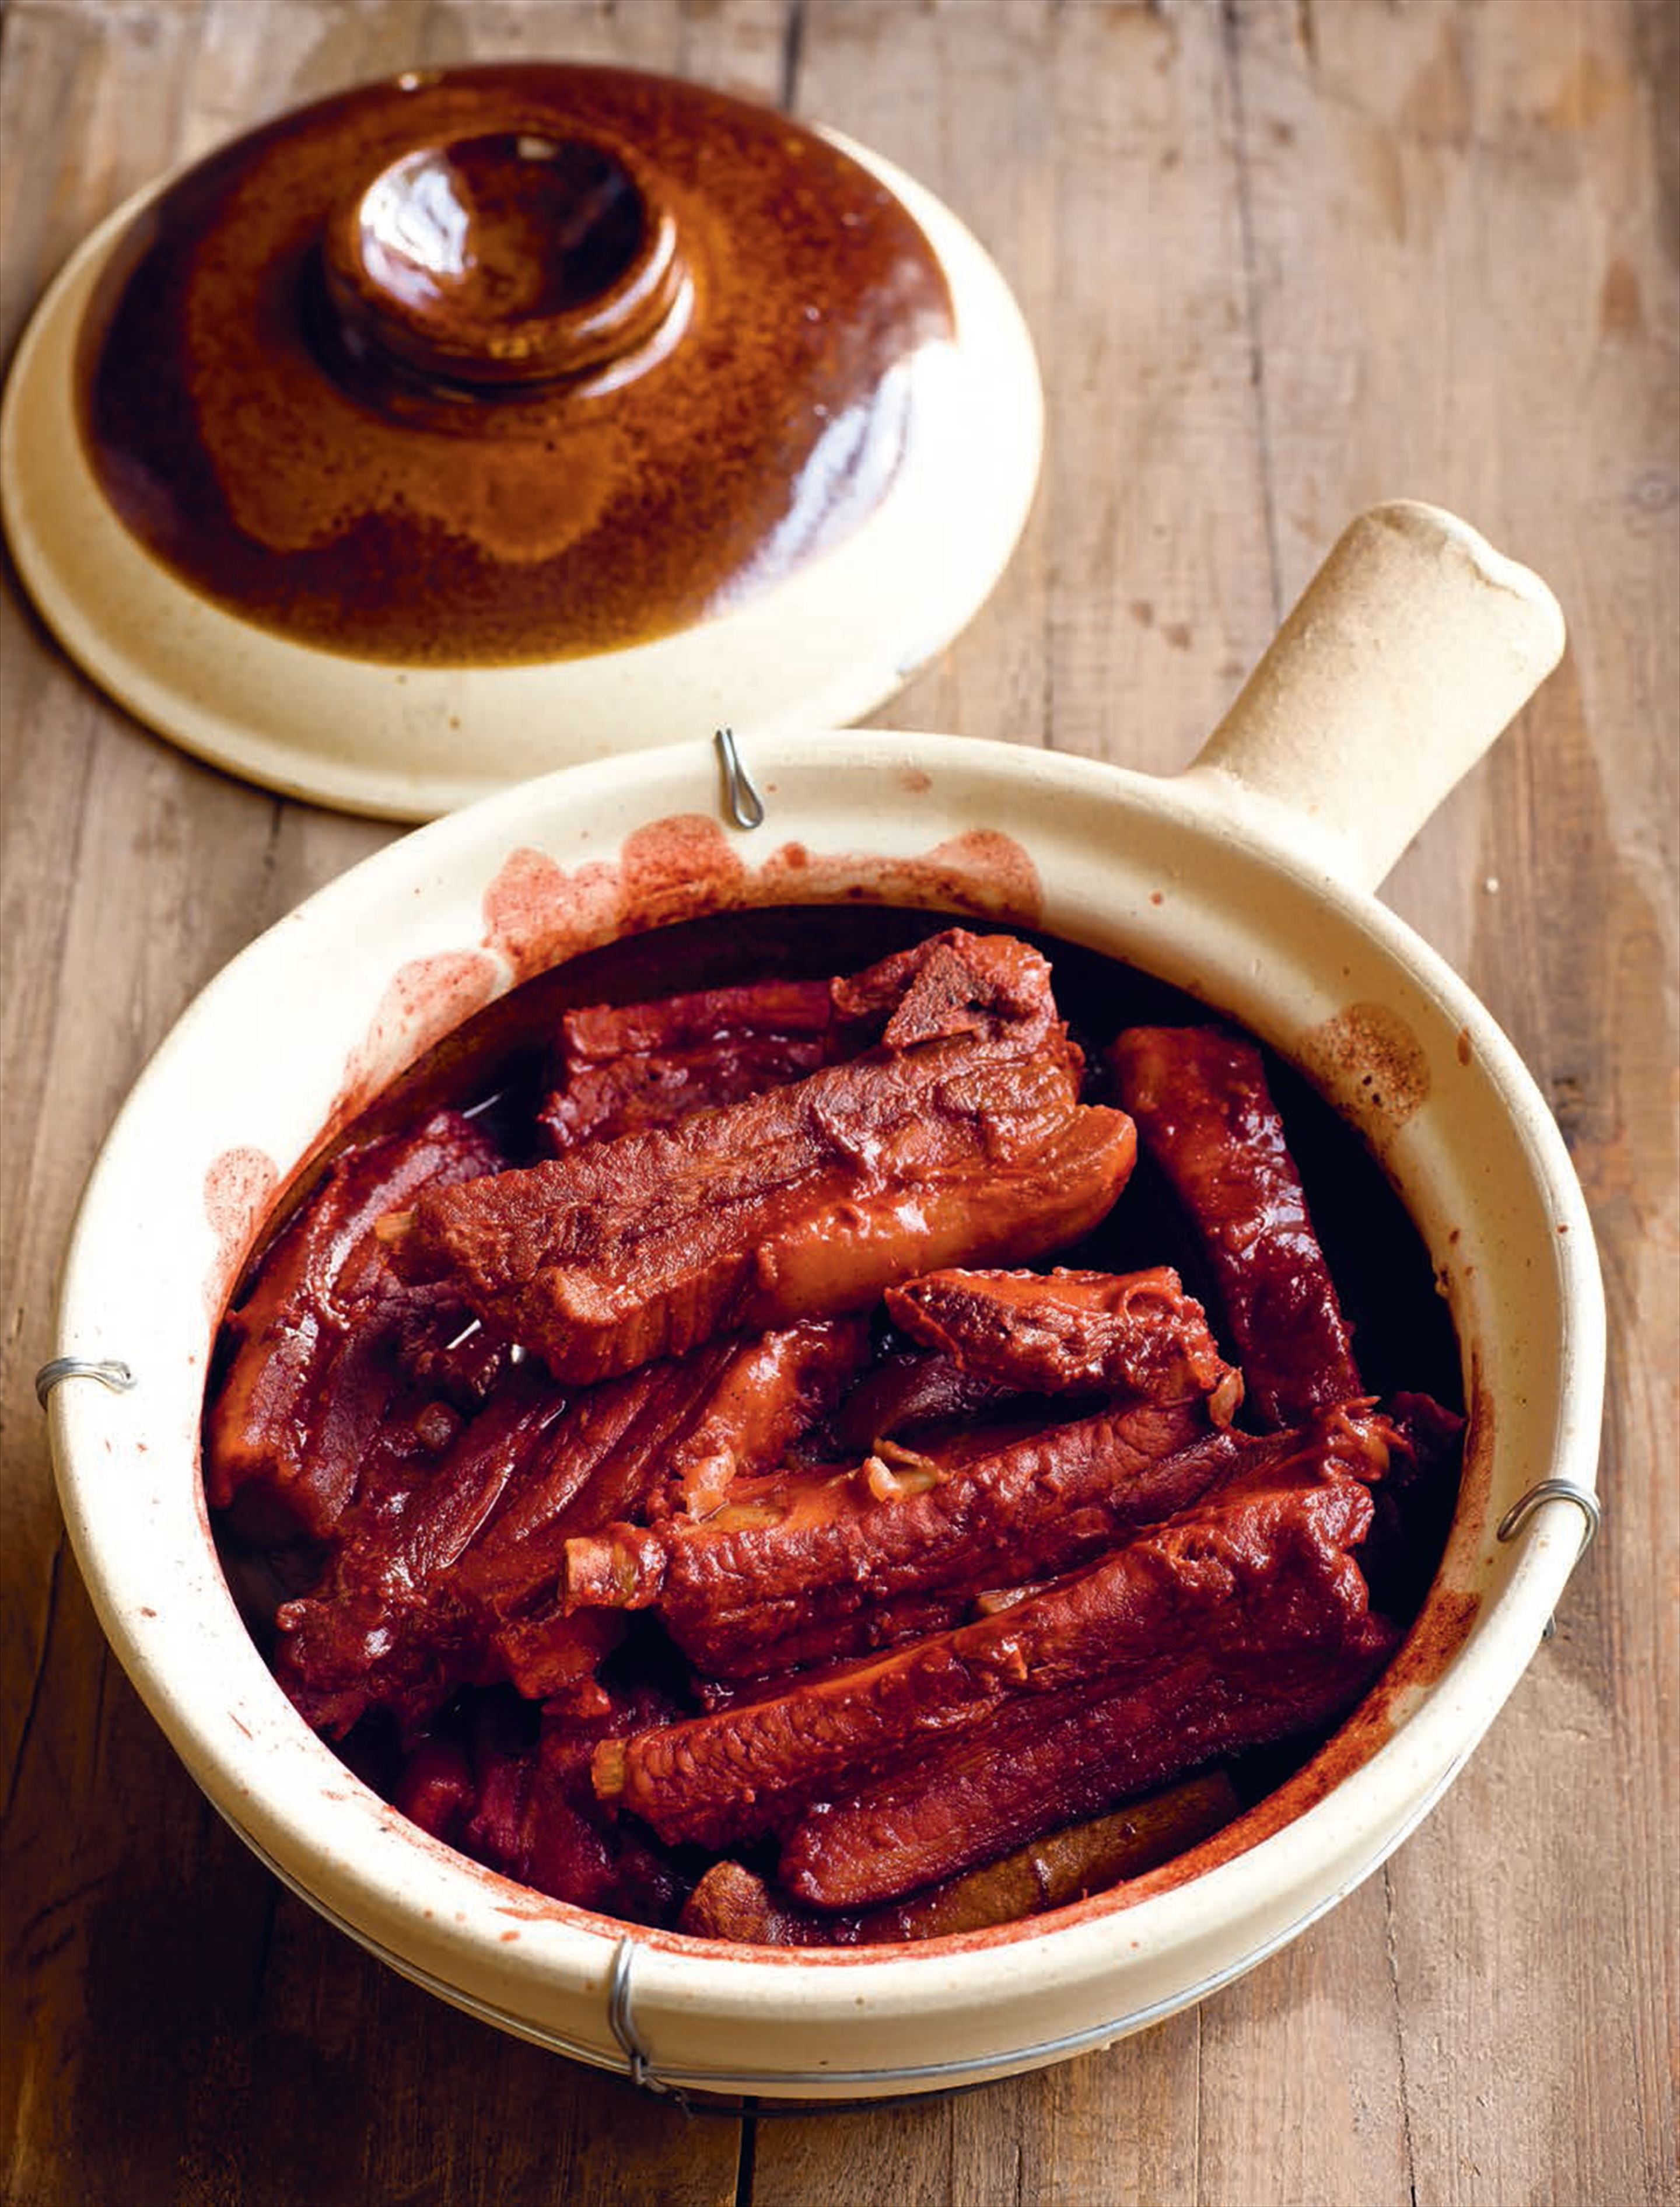 Tuzi's slow-cooked ribs with red fermented tofu